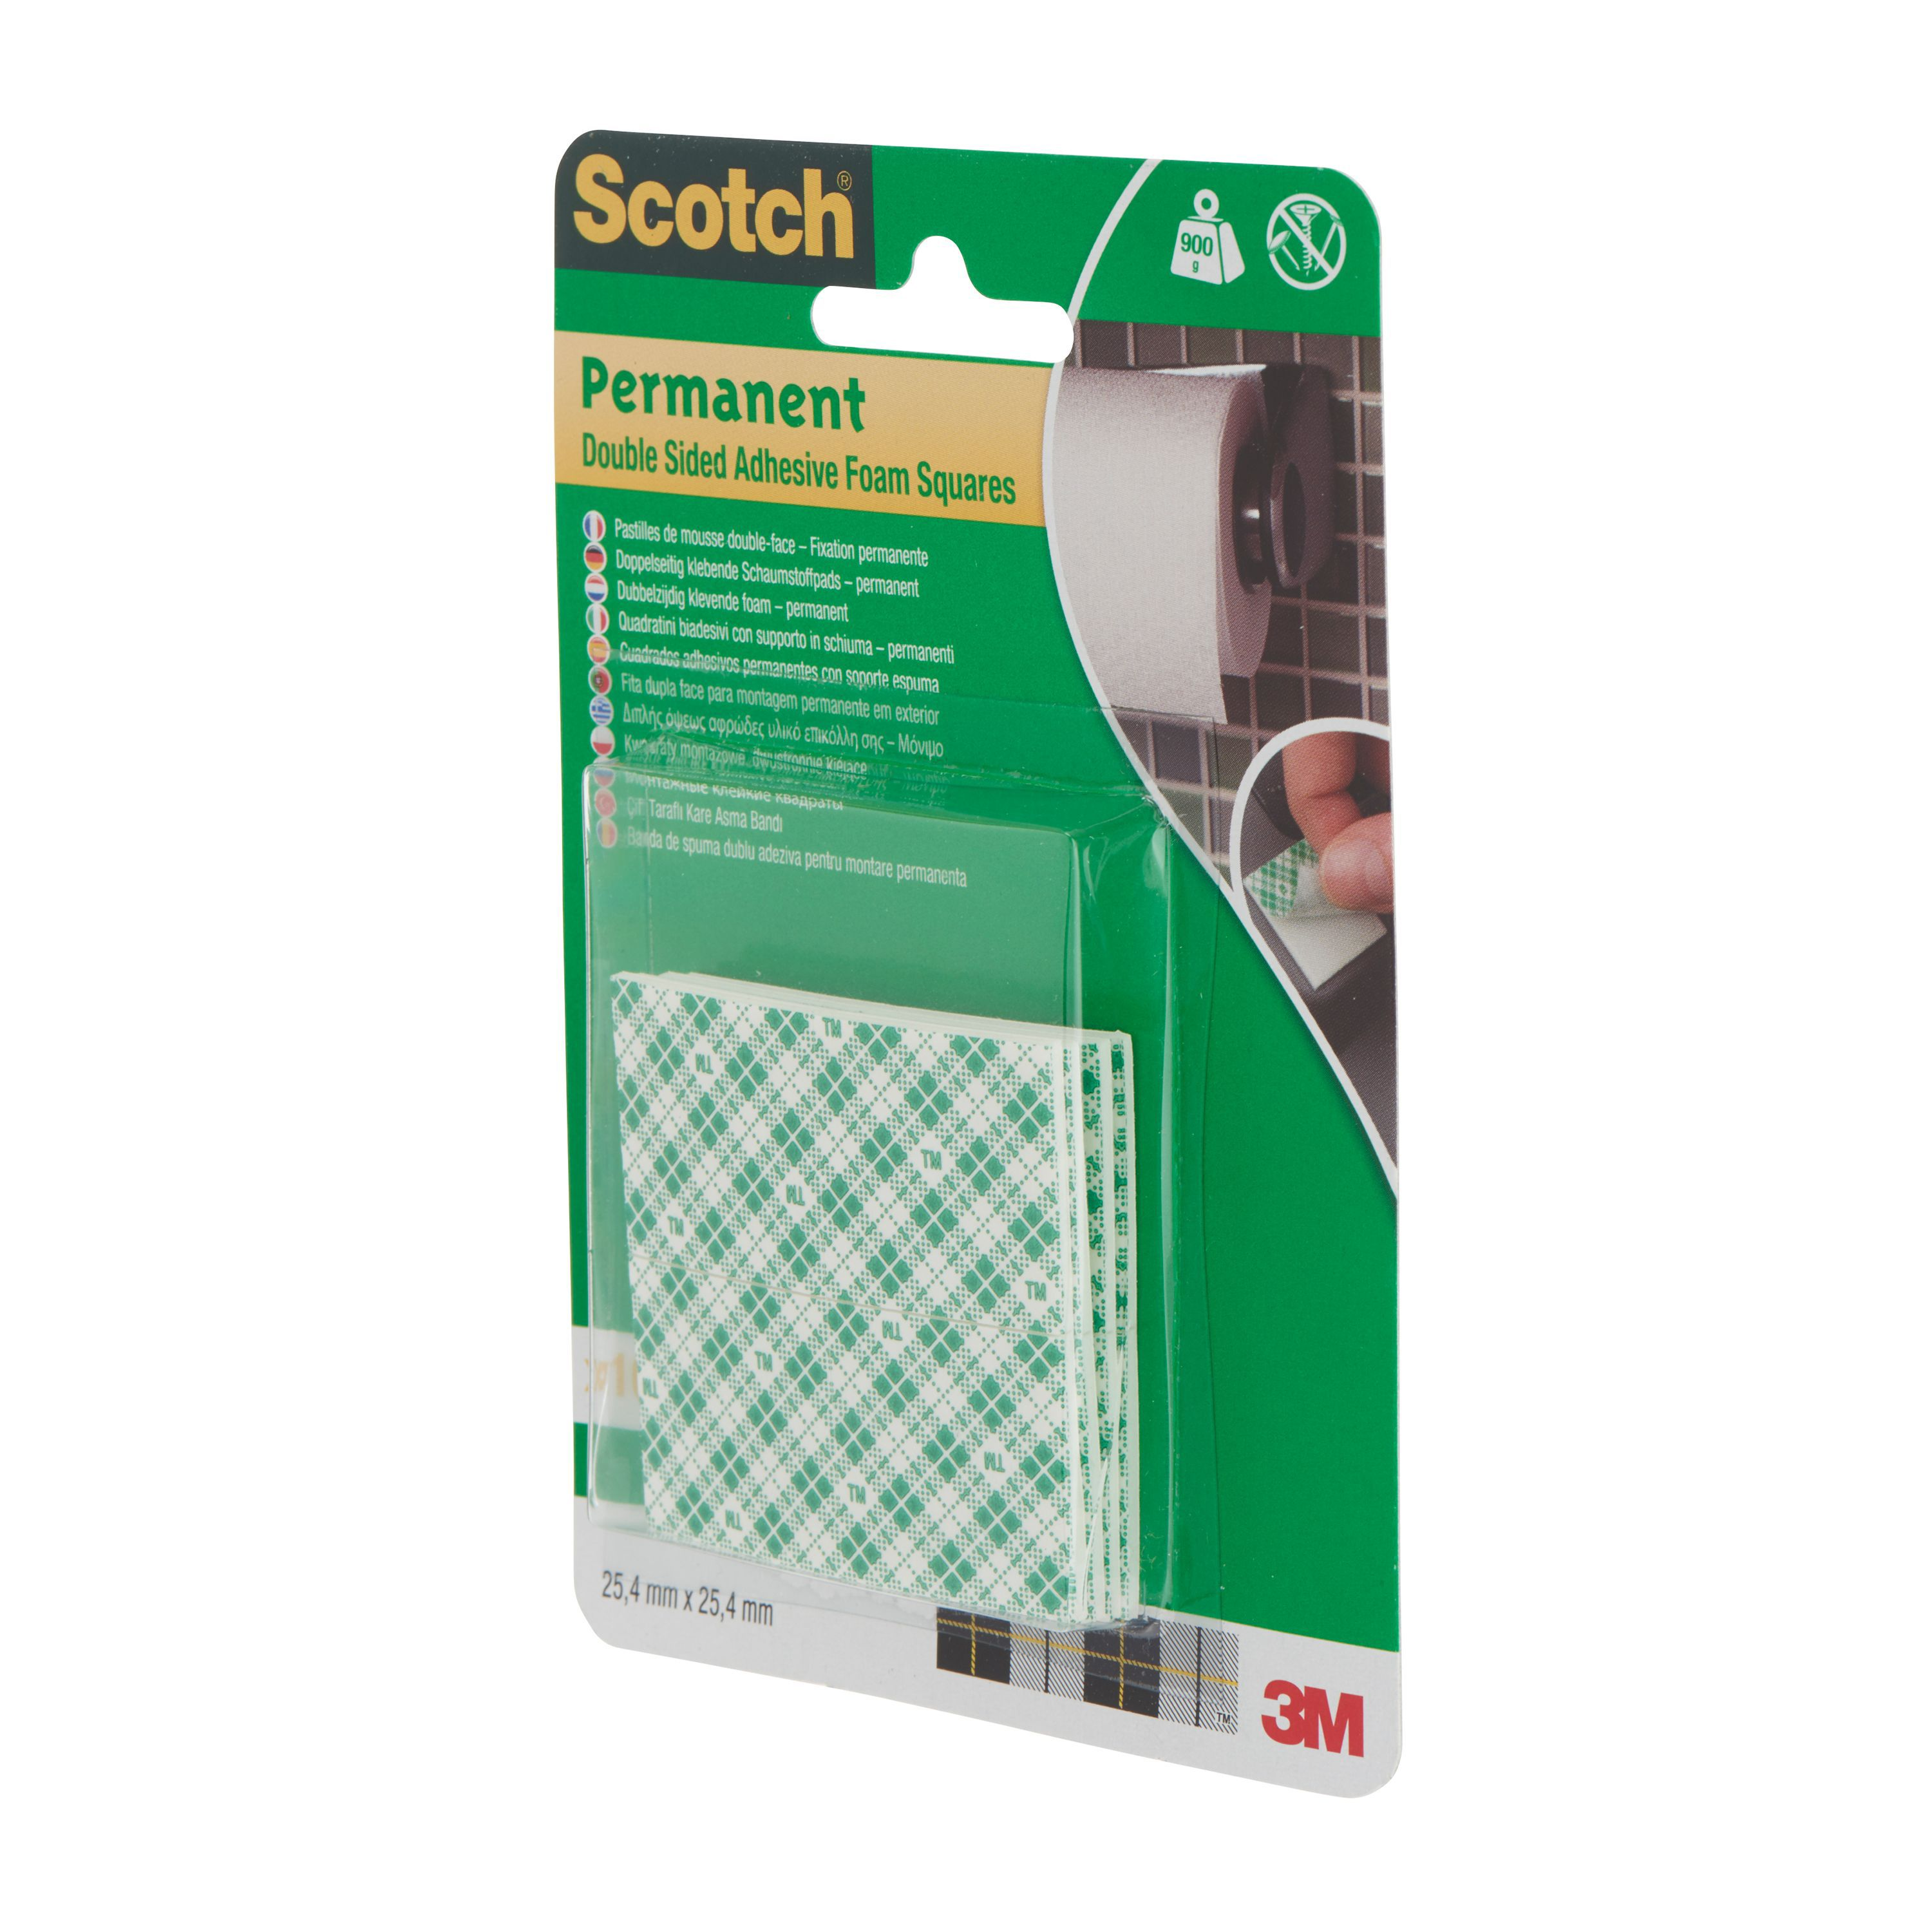 Scotch grey double sided tape l 25 4 m w departments tradepoint - Scotch double face castorama ...